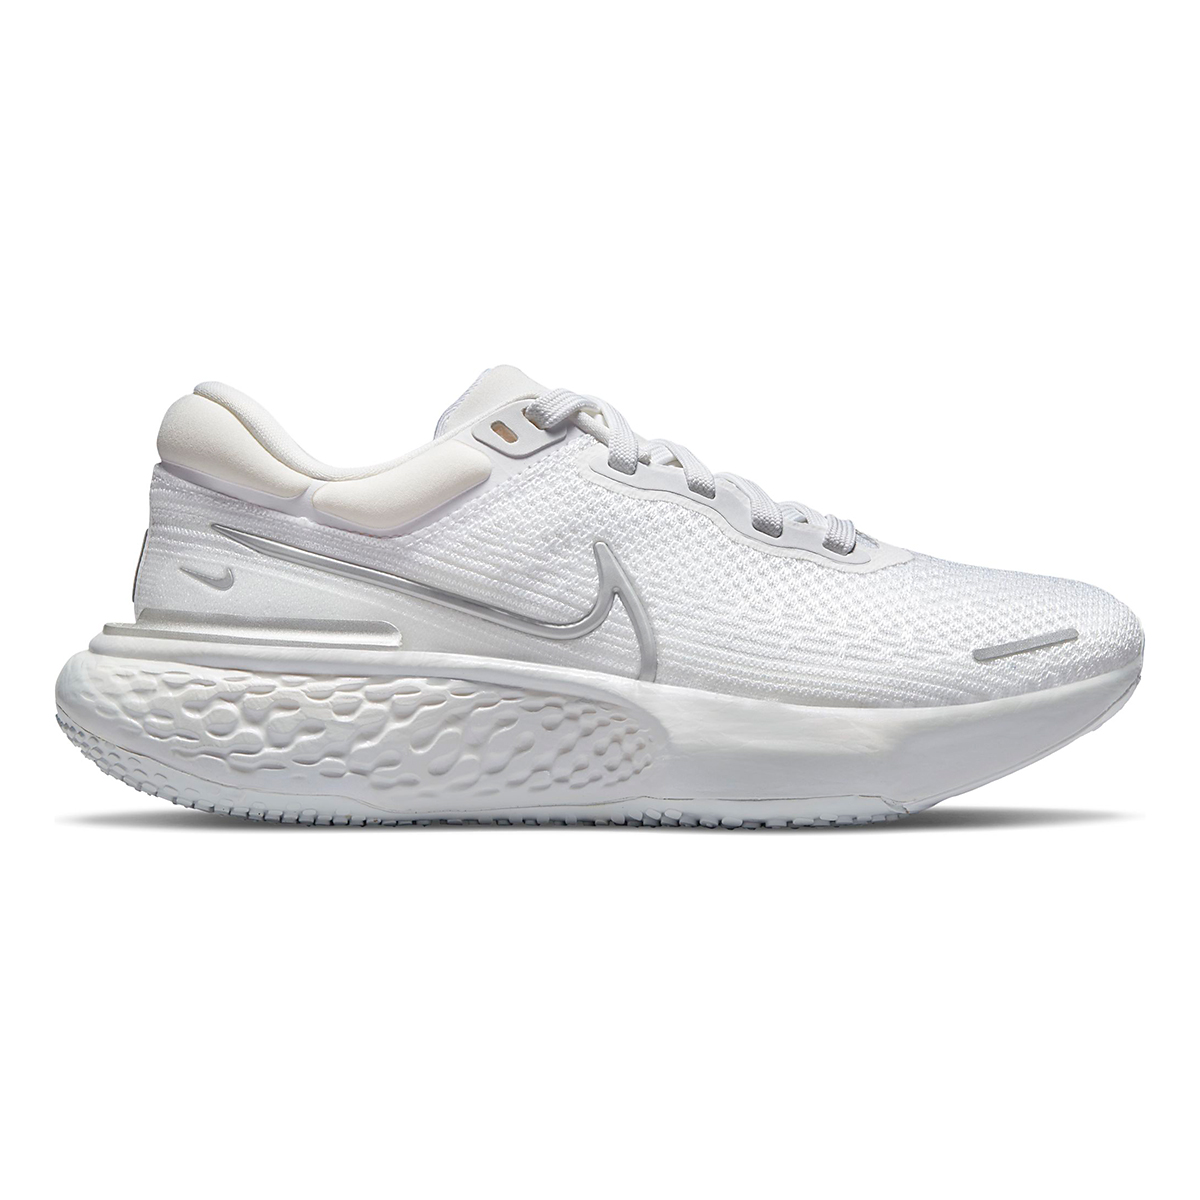 Women's Nike ZoomX Invincible Run Flyknit - Color: White/Metallic Silver/Pure Platinum - Size: 5 - Width: Regular, White/Metallic Silver/Pure Platinum, large, image 1